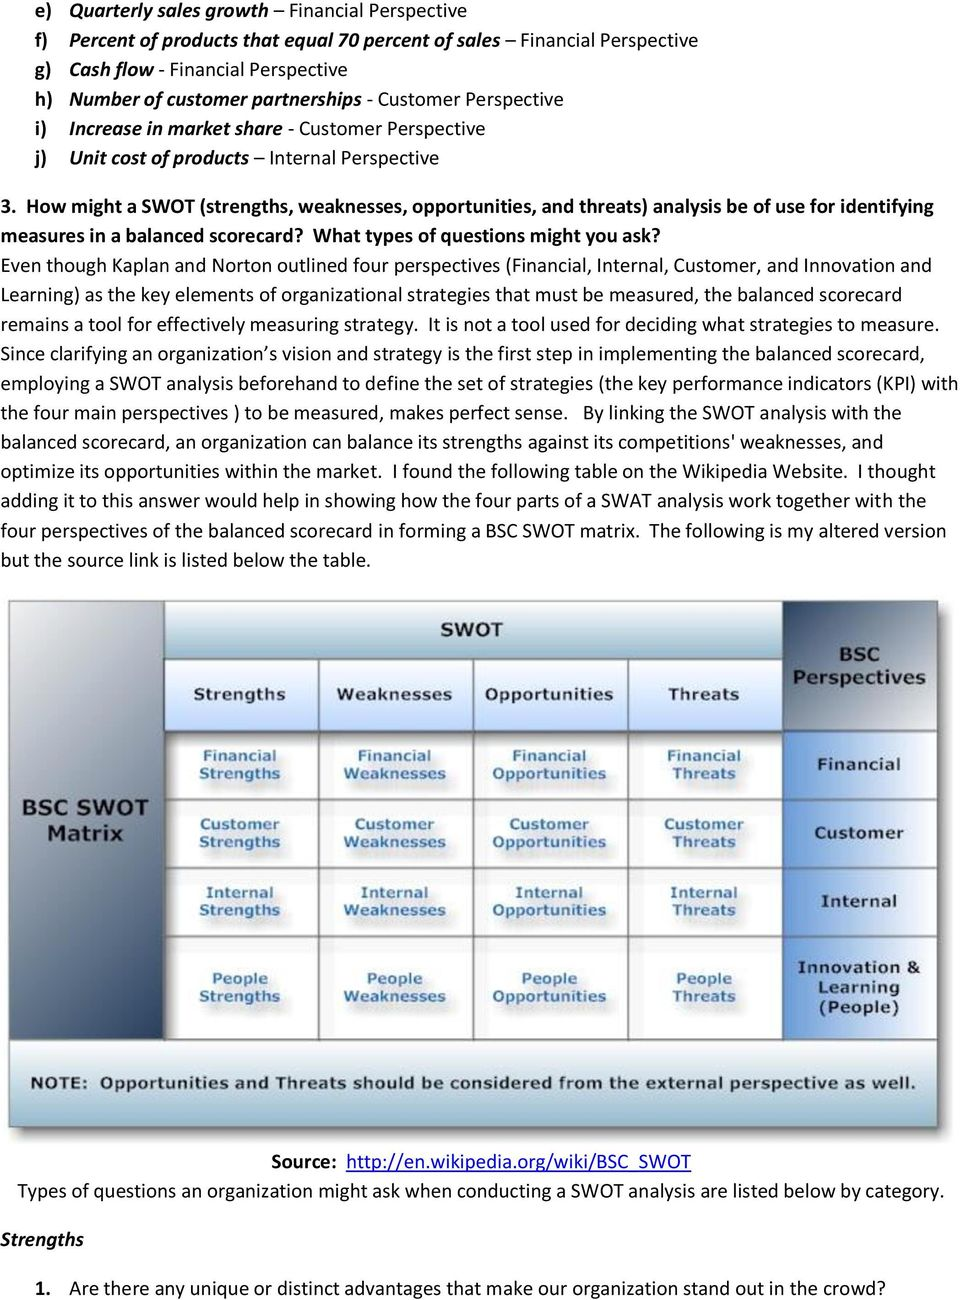 How might a SWOT (strengths, weaknesses, opportunities, and threats) analysis be of use for identifying measures in a balanced scorecard? What types of questions might you ask?